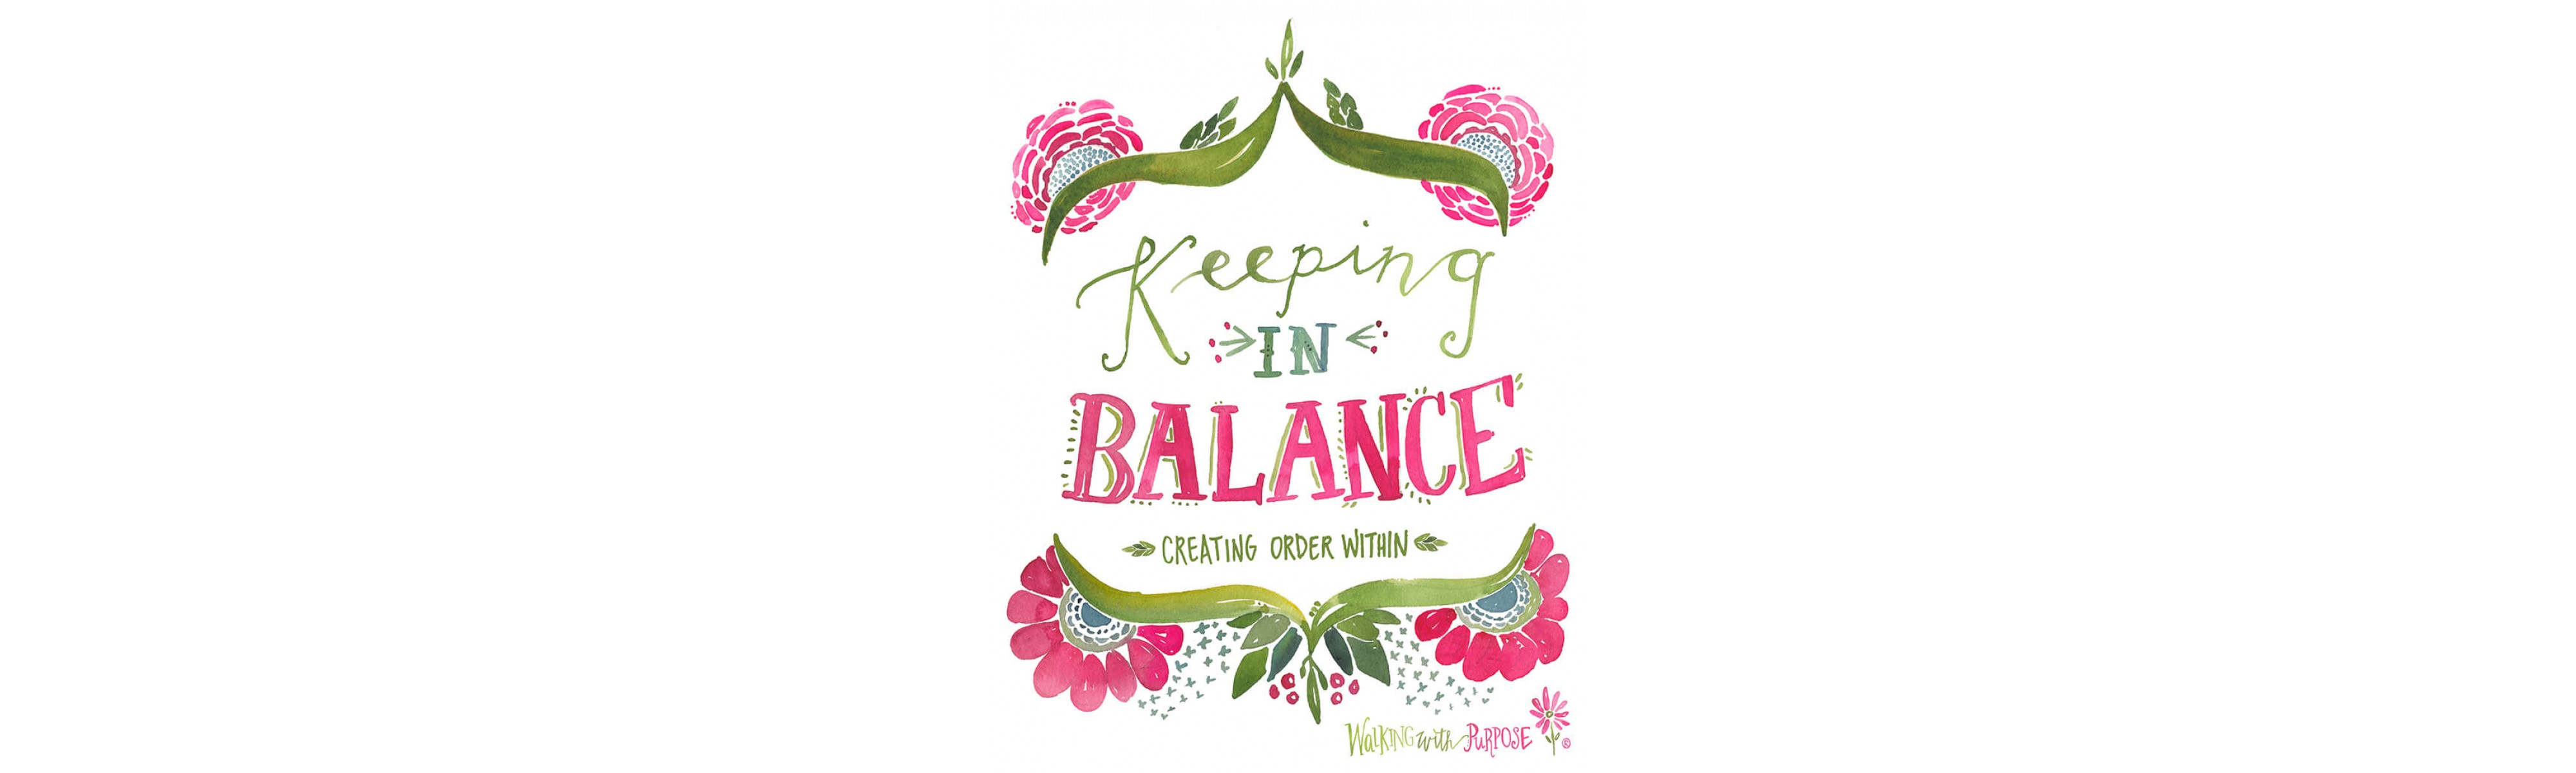 Keeping in Balance